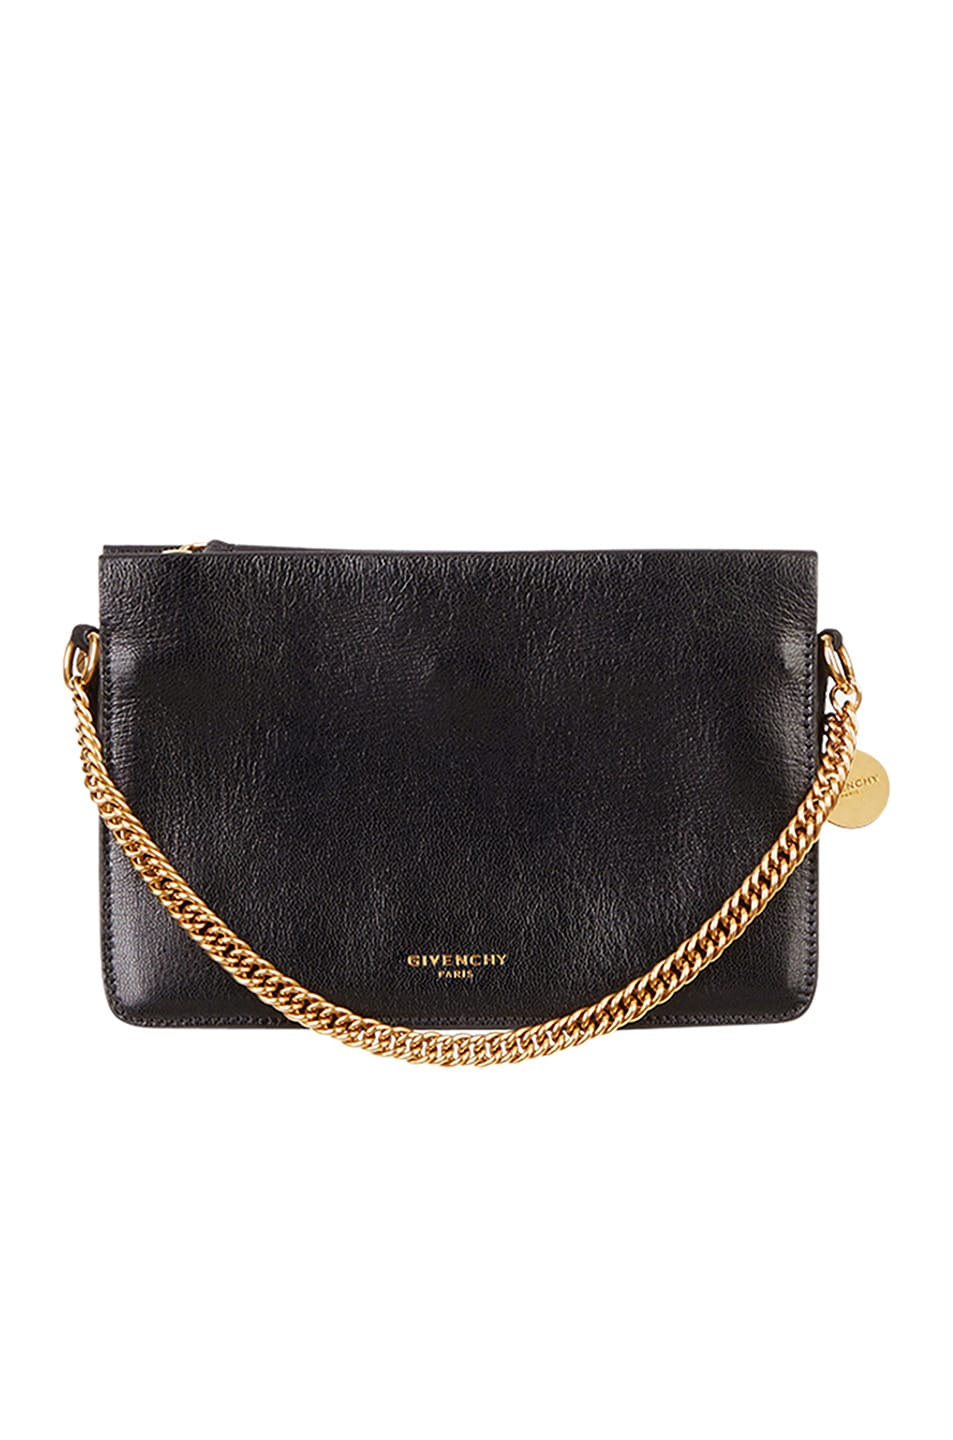 Image 1 of Givenchy Leather Crossbody Bag in Black